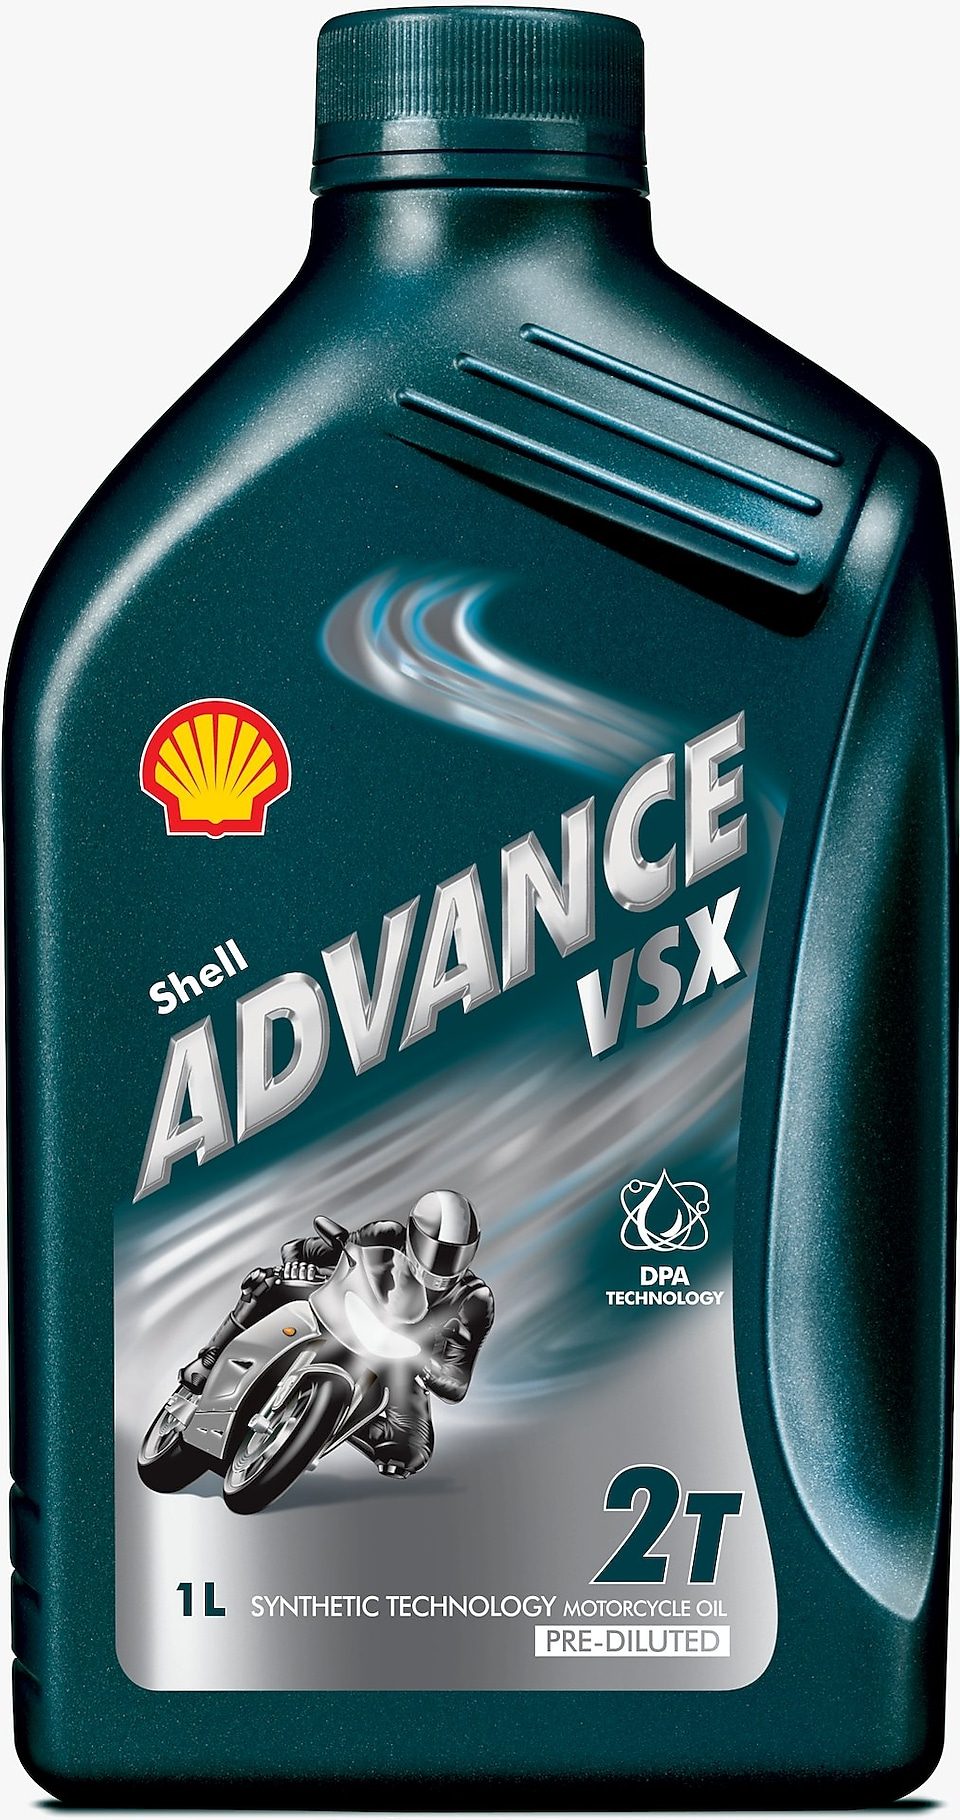 Flacone di Shell Advance VSX 2